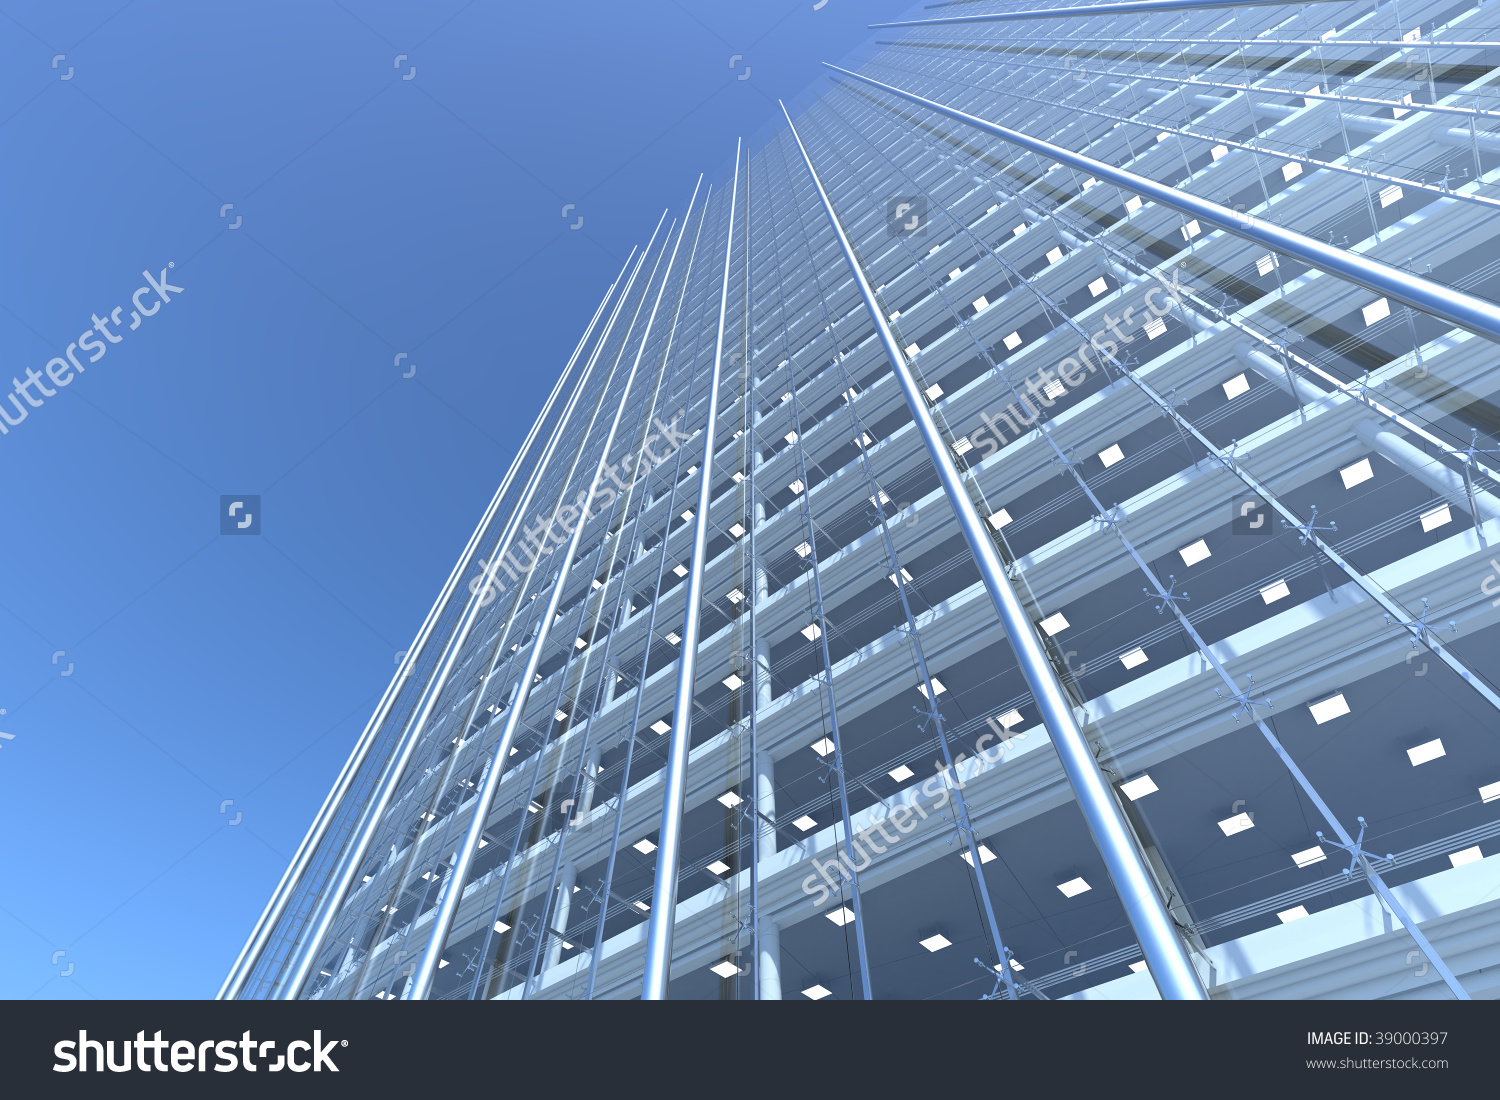 Blank Curved Facade Of Glass Office Building With Reflections.